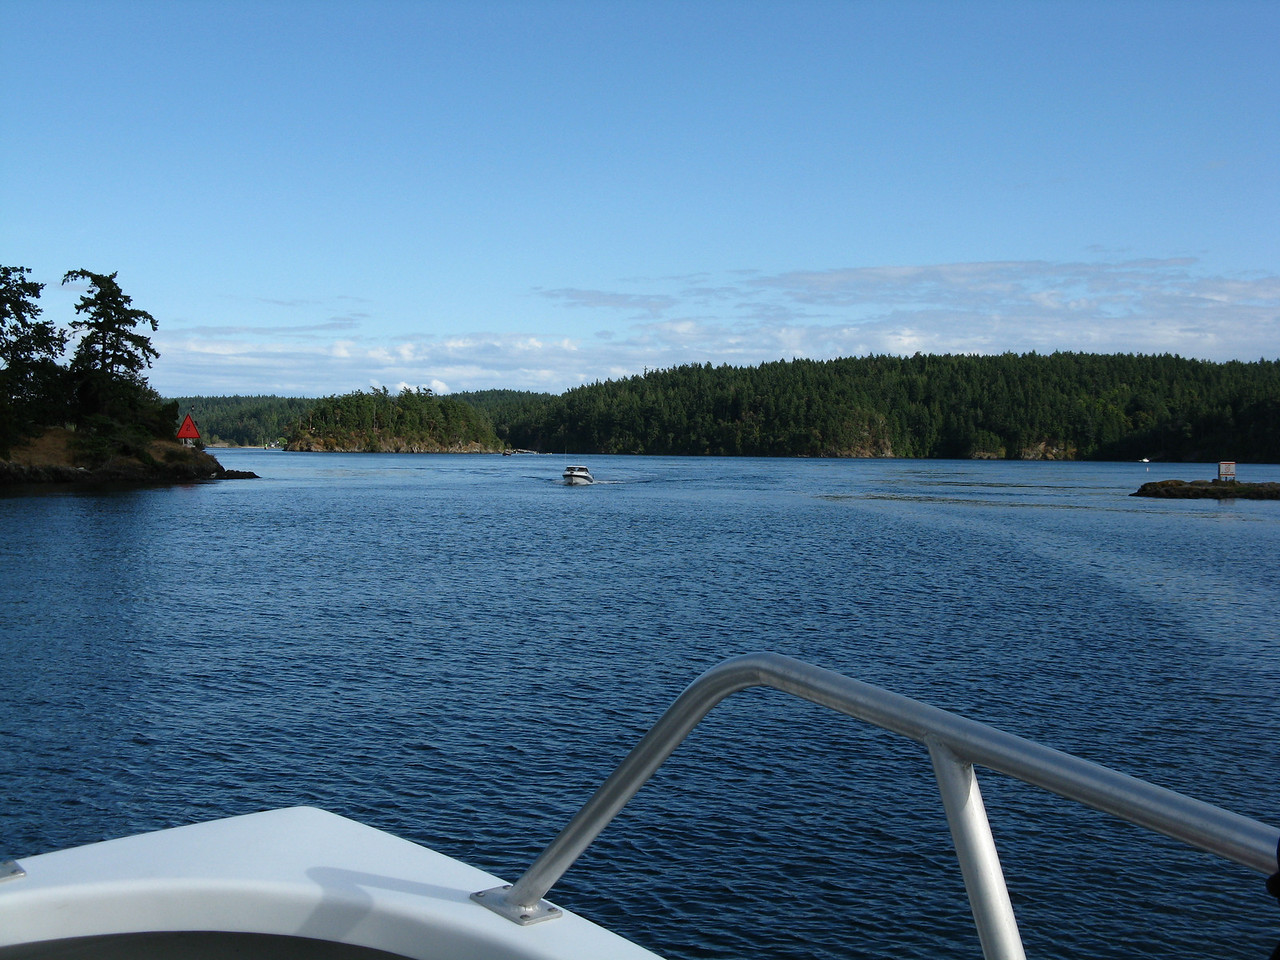 Narrow passage way east of Deer Harbor.  Orcas on the left and Crane island tip on very right side, Shaw Island straight ahead.